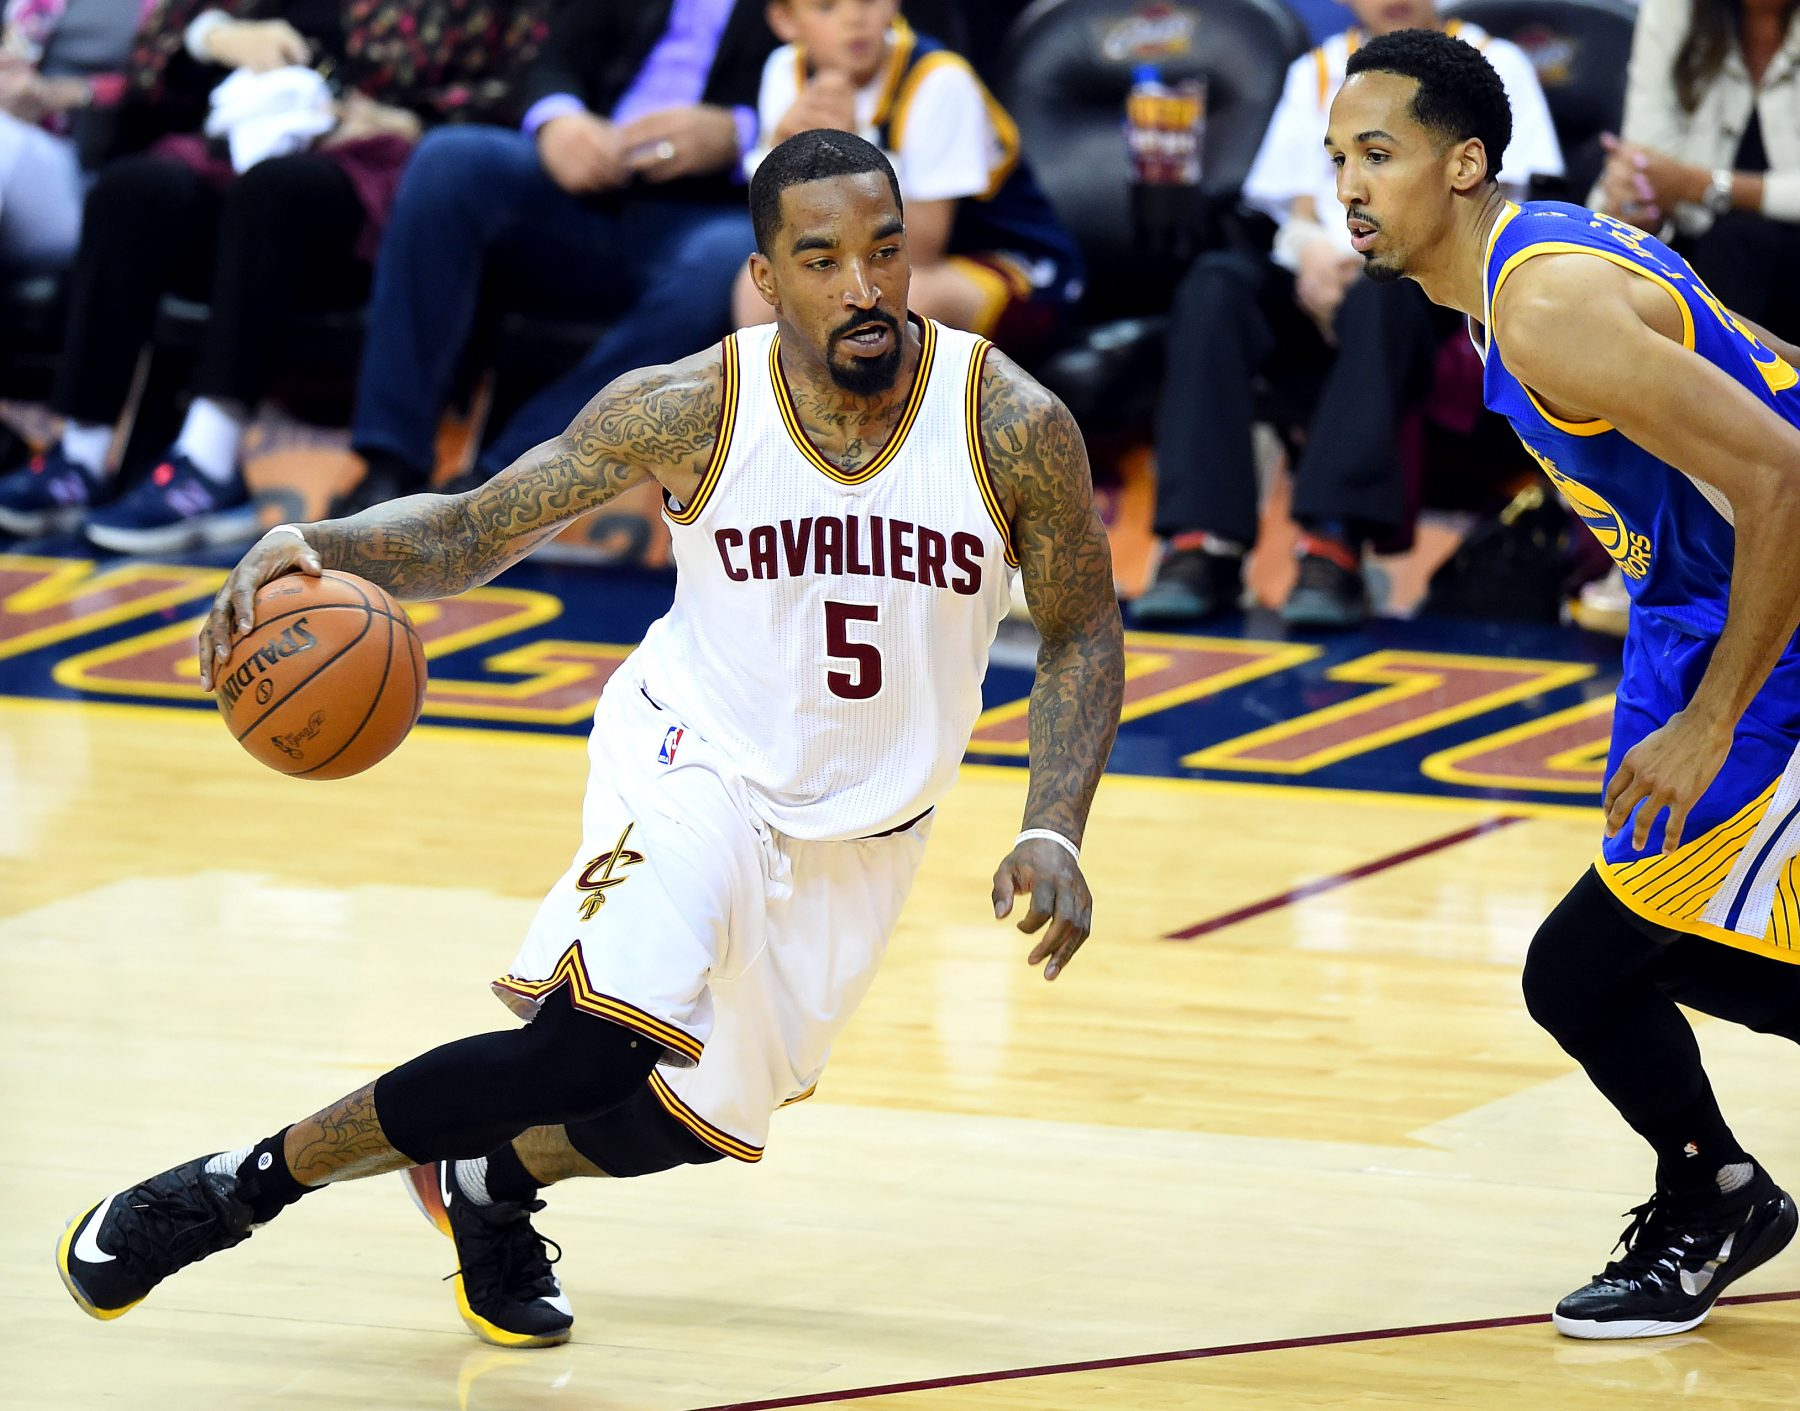 J.R. Smith and Shaun Livingston